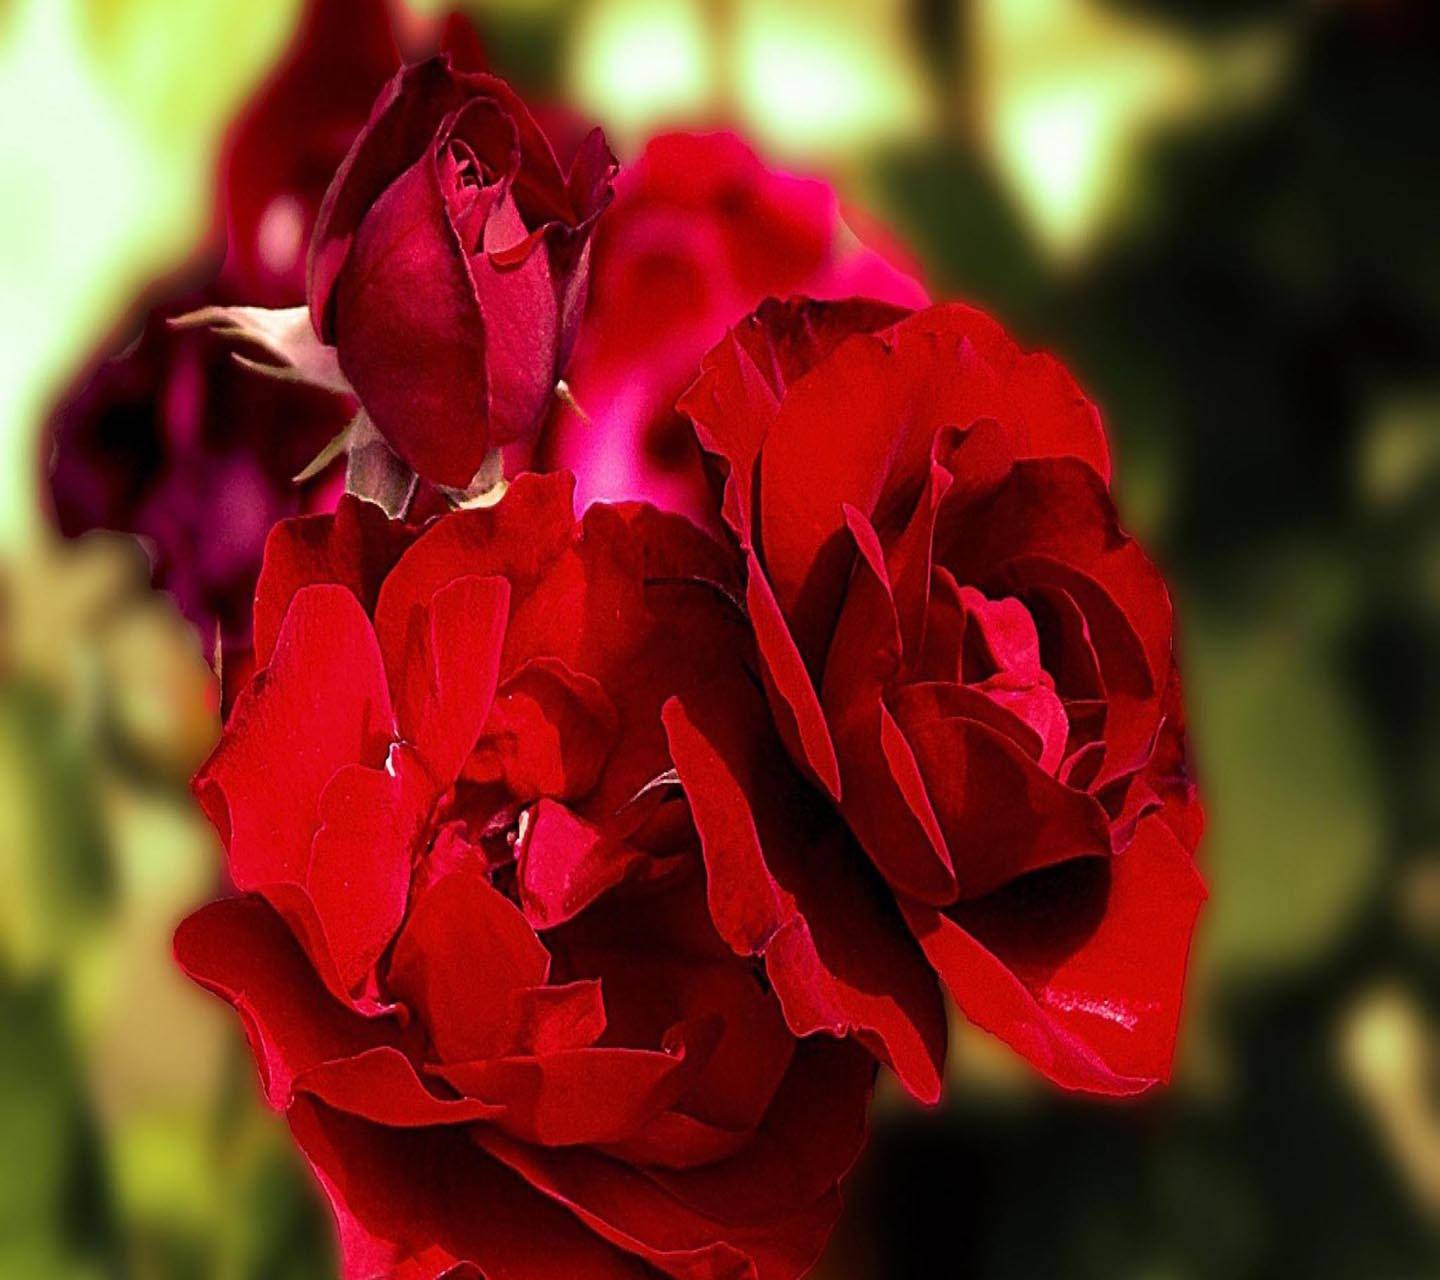 Lovely Red Rose Wallpaper By Luckyman 18 Free On Zedge